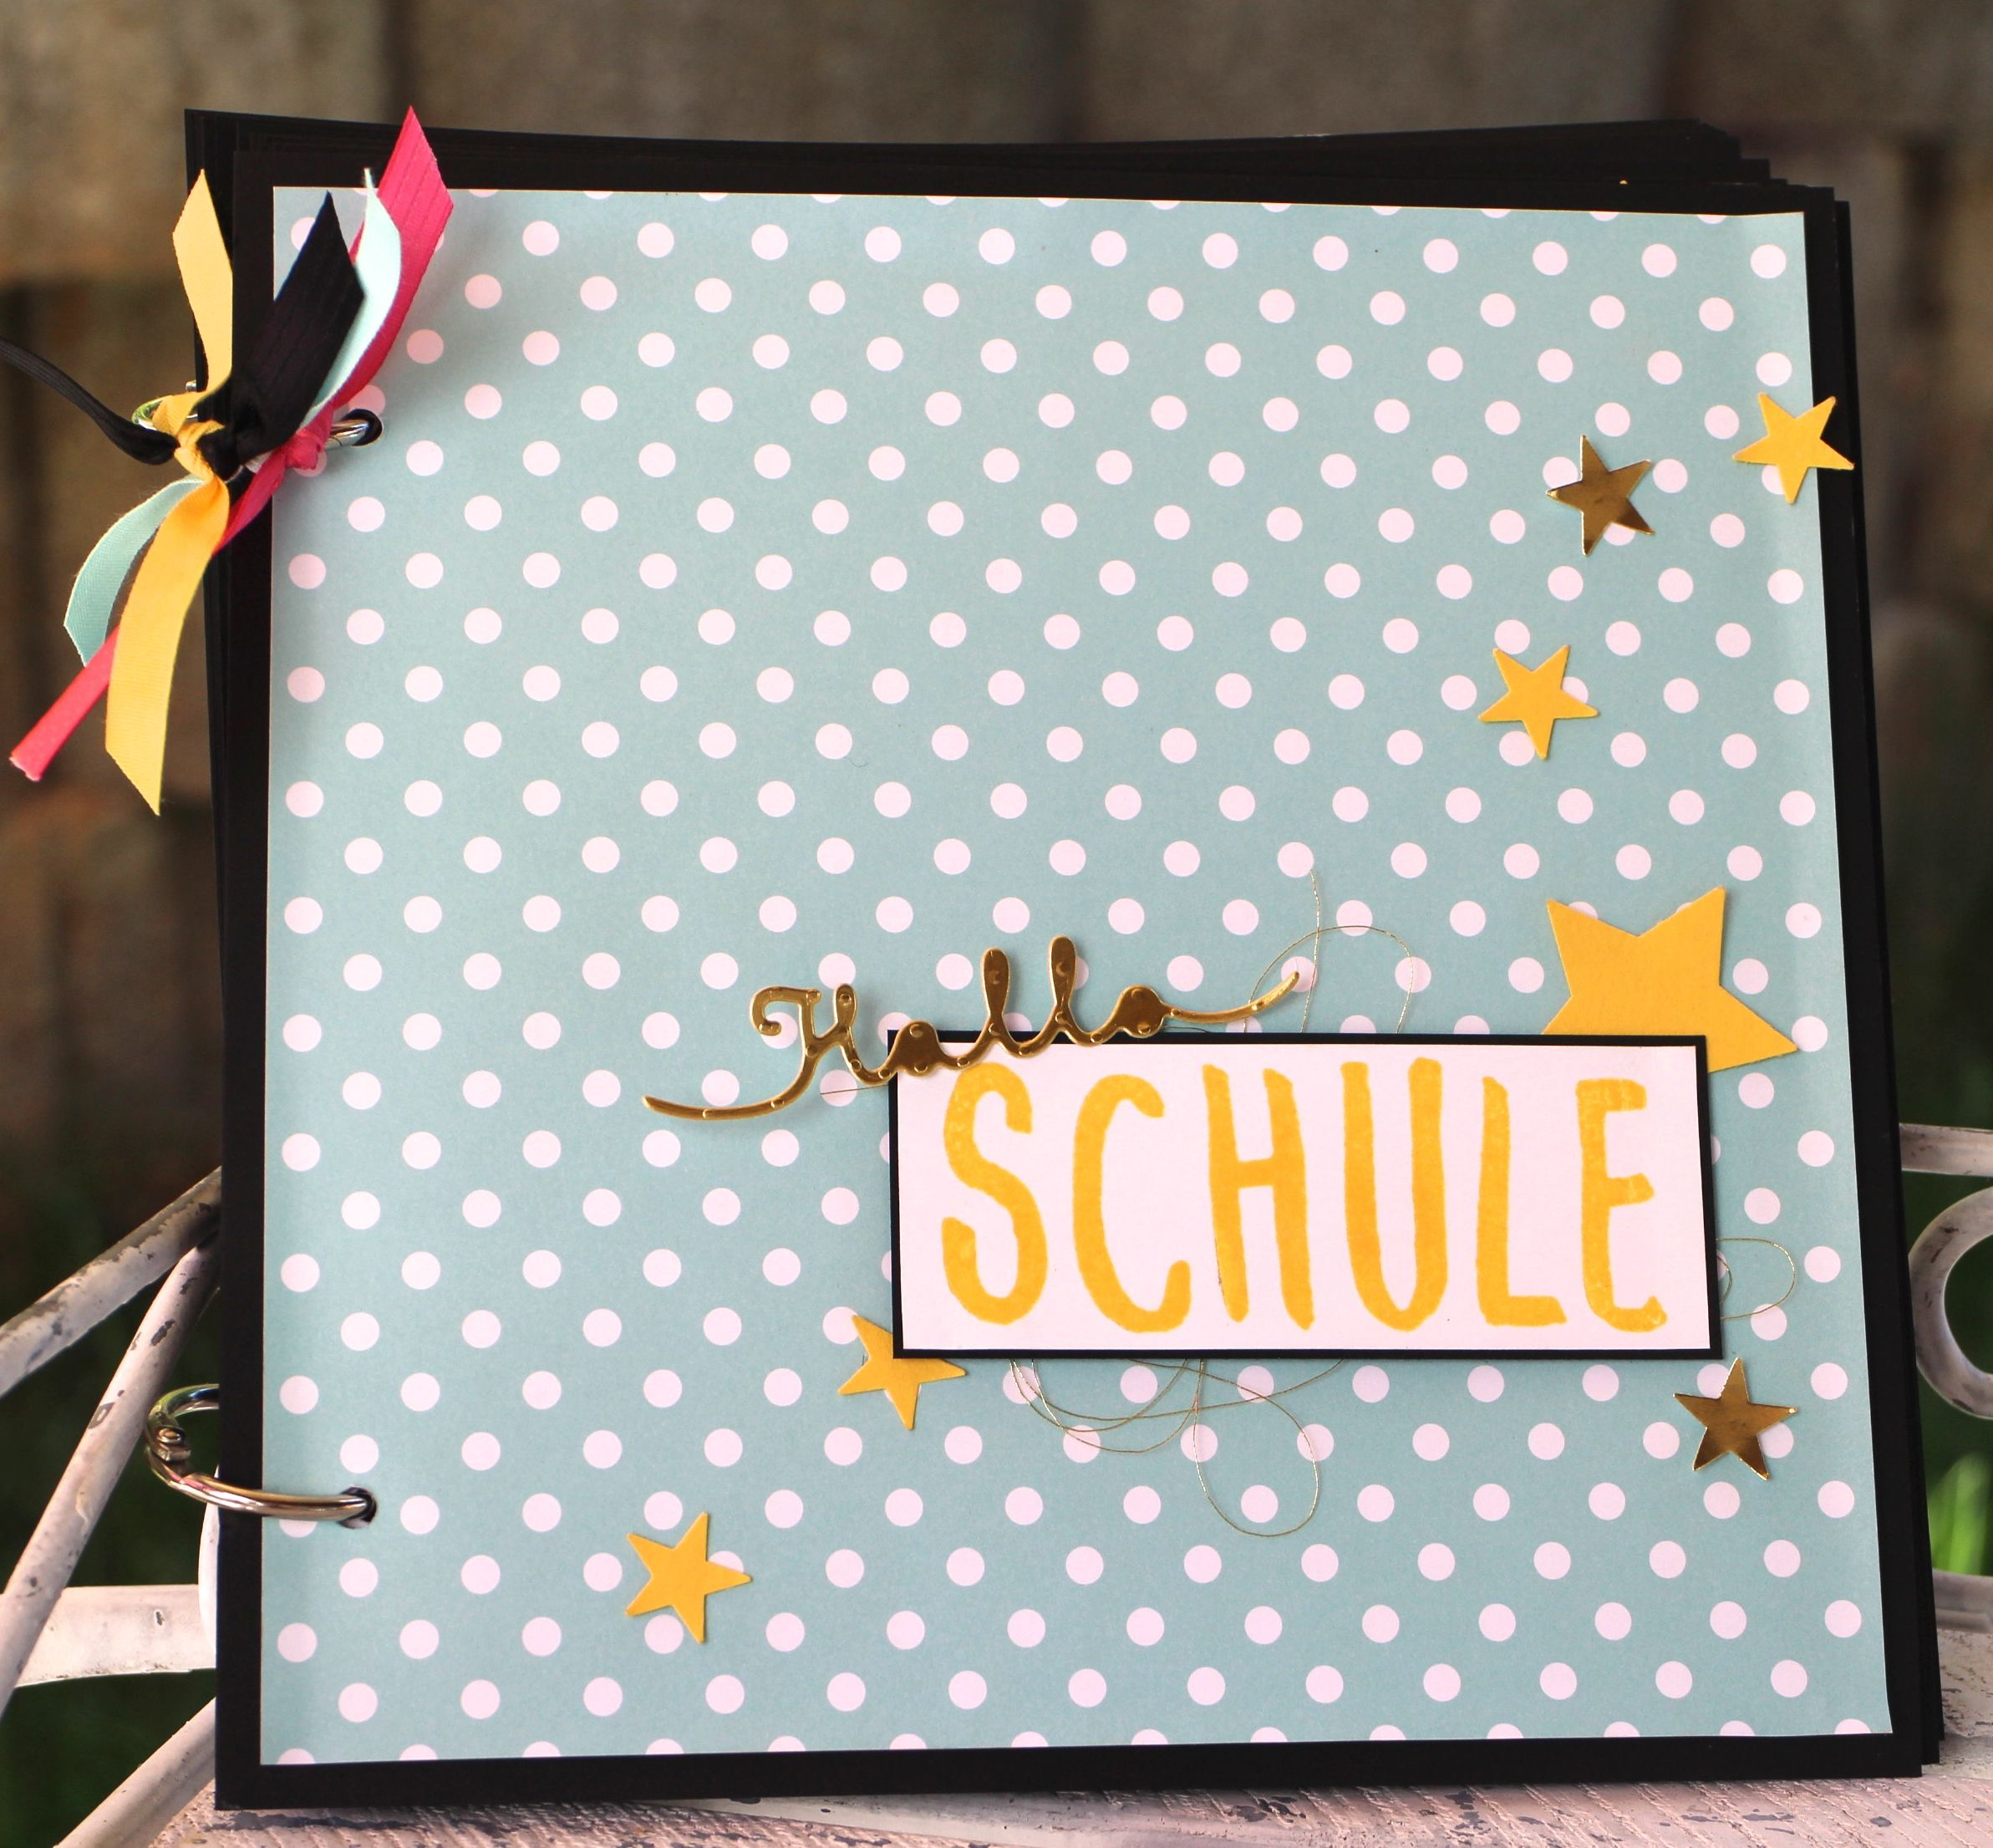 Album Gestalten Minialbum Quothallo Schule Quot Stampin Up Artisan Bloghop